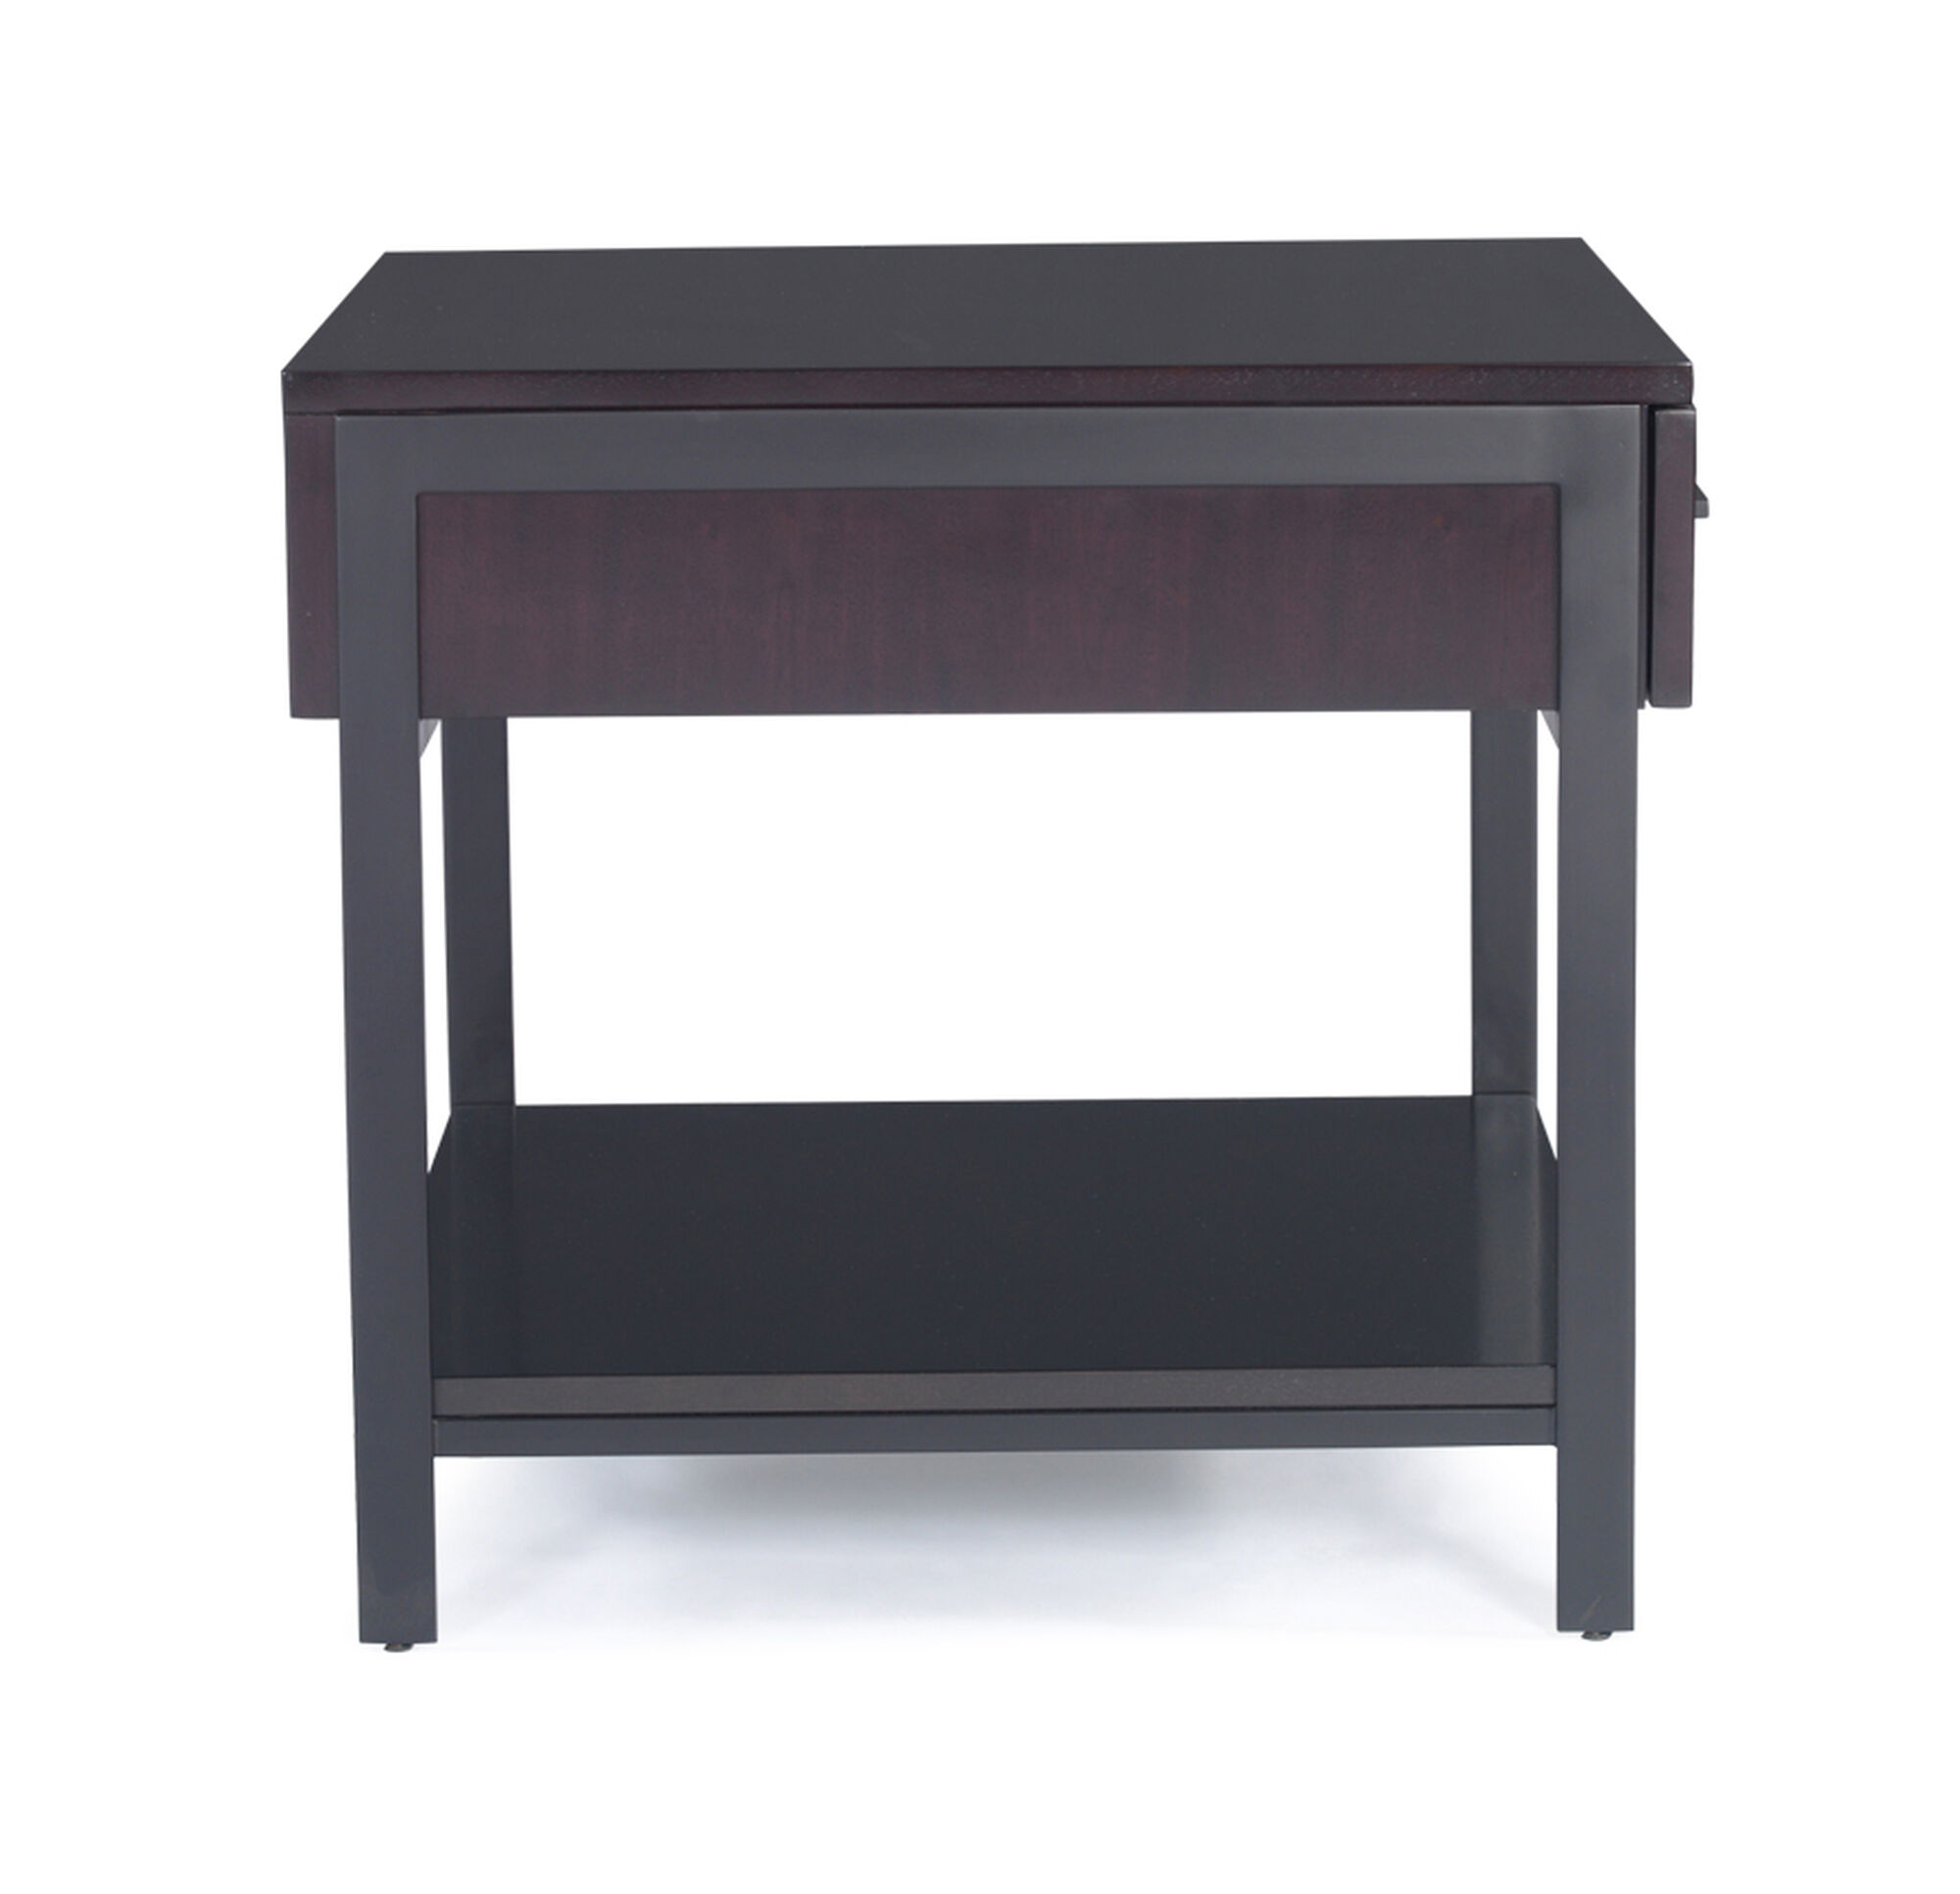 off furniture drawer two tables table environment santomer rustic side